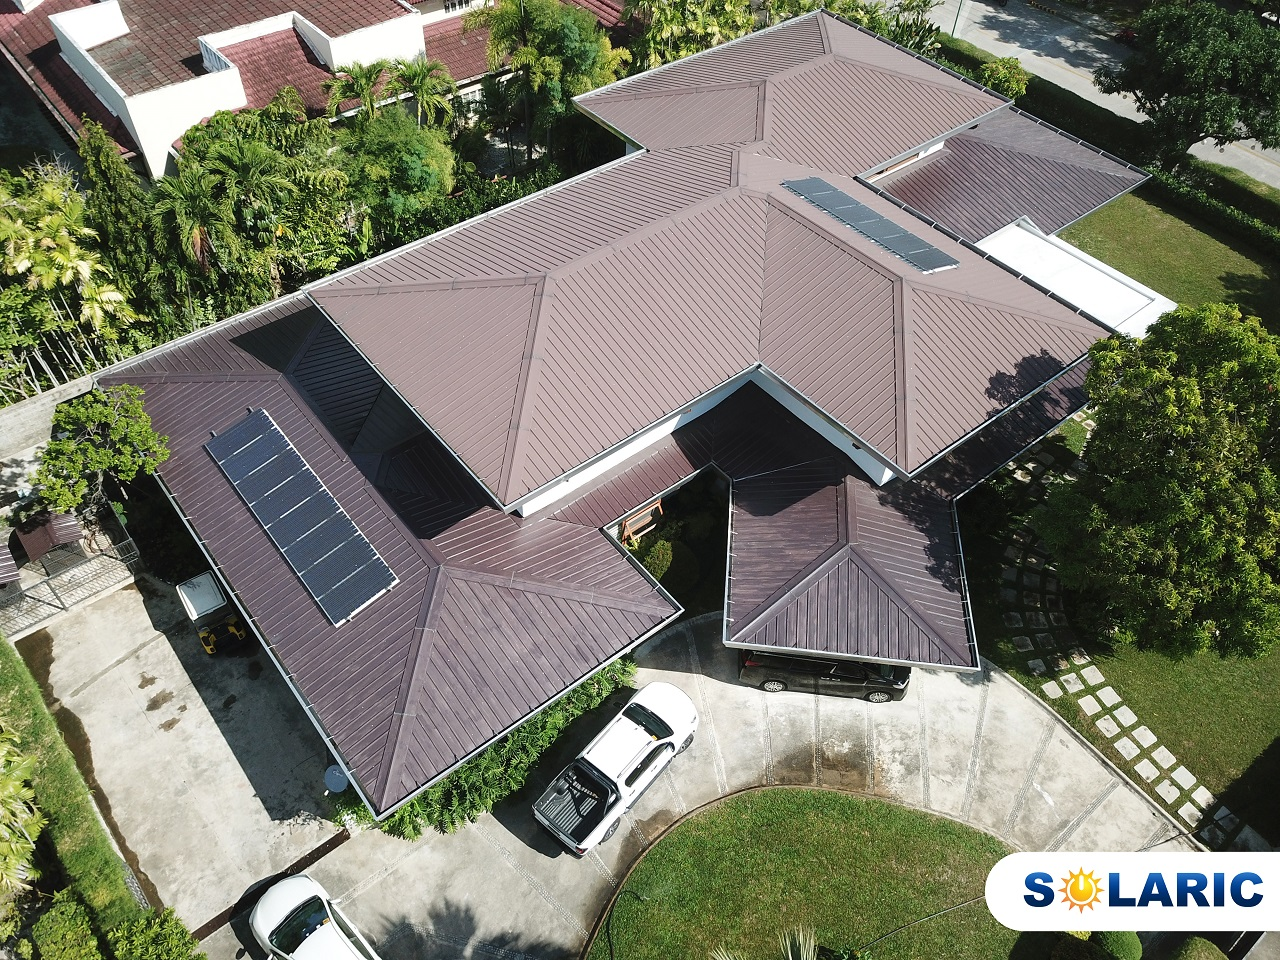 A top shot of a house with solar panels on its roof